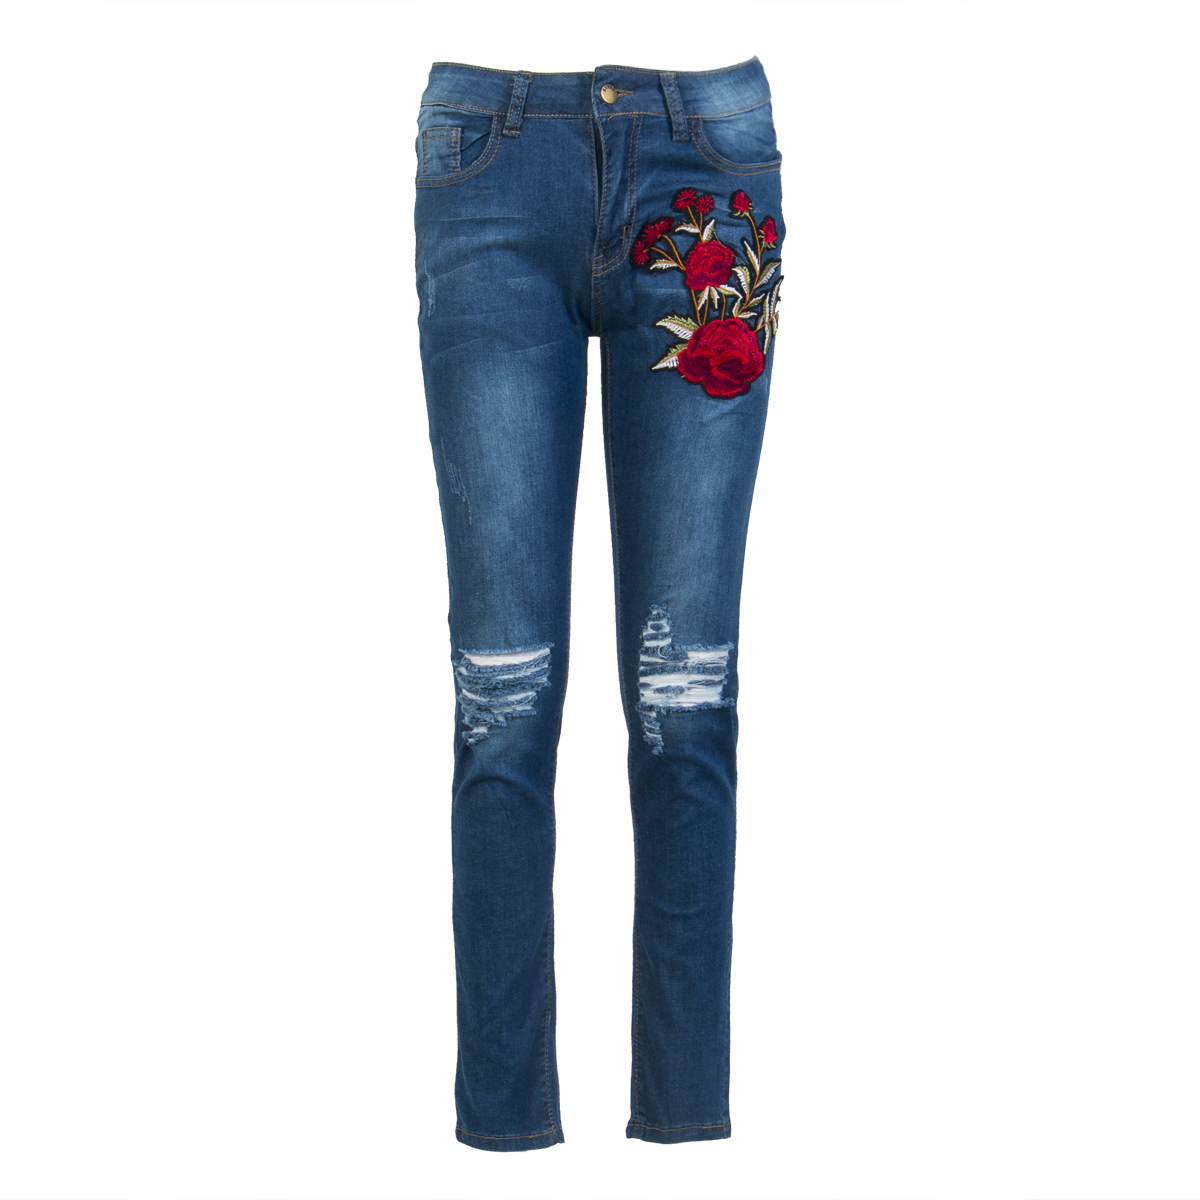 Plus Size Women Denim Skinny Pants High Waist Hole Stretch Trousers Slim Pencil Jeans Stylish Floral Embroidery Pencil Jeans elastic jeans women brand new plus size 3 4 5 6 xl casual slim skinny classic denim pencil pants trousers blue lej11